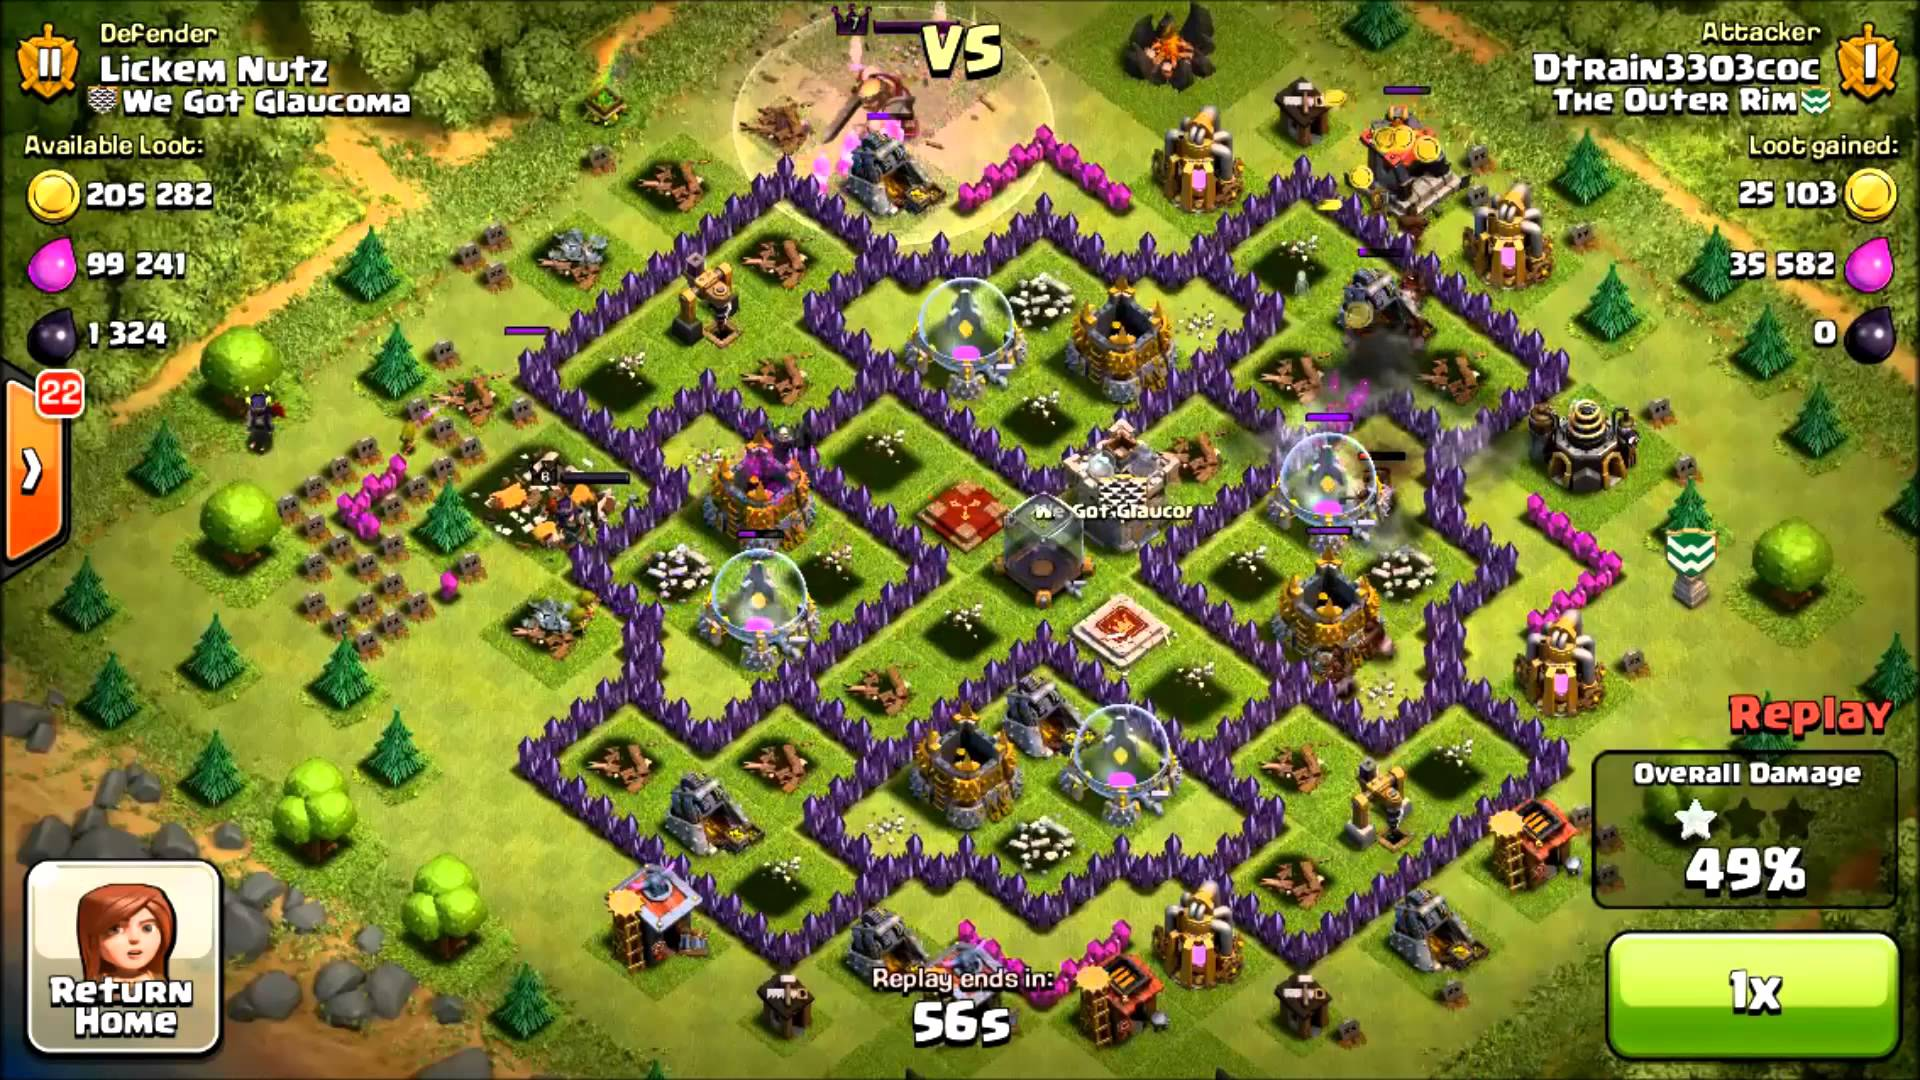 Clash of Clans – Hog Rider Attack Strategy Guide For Low Level Hogs!